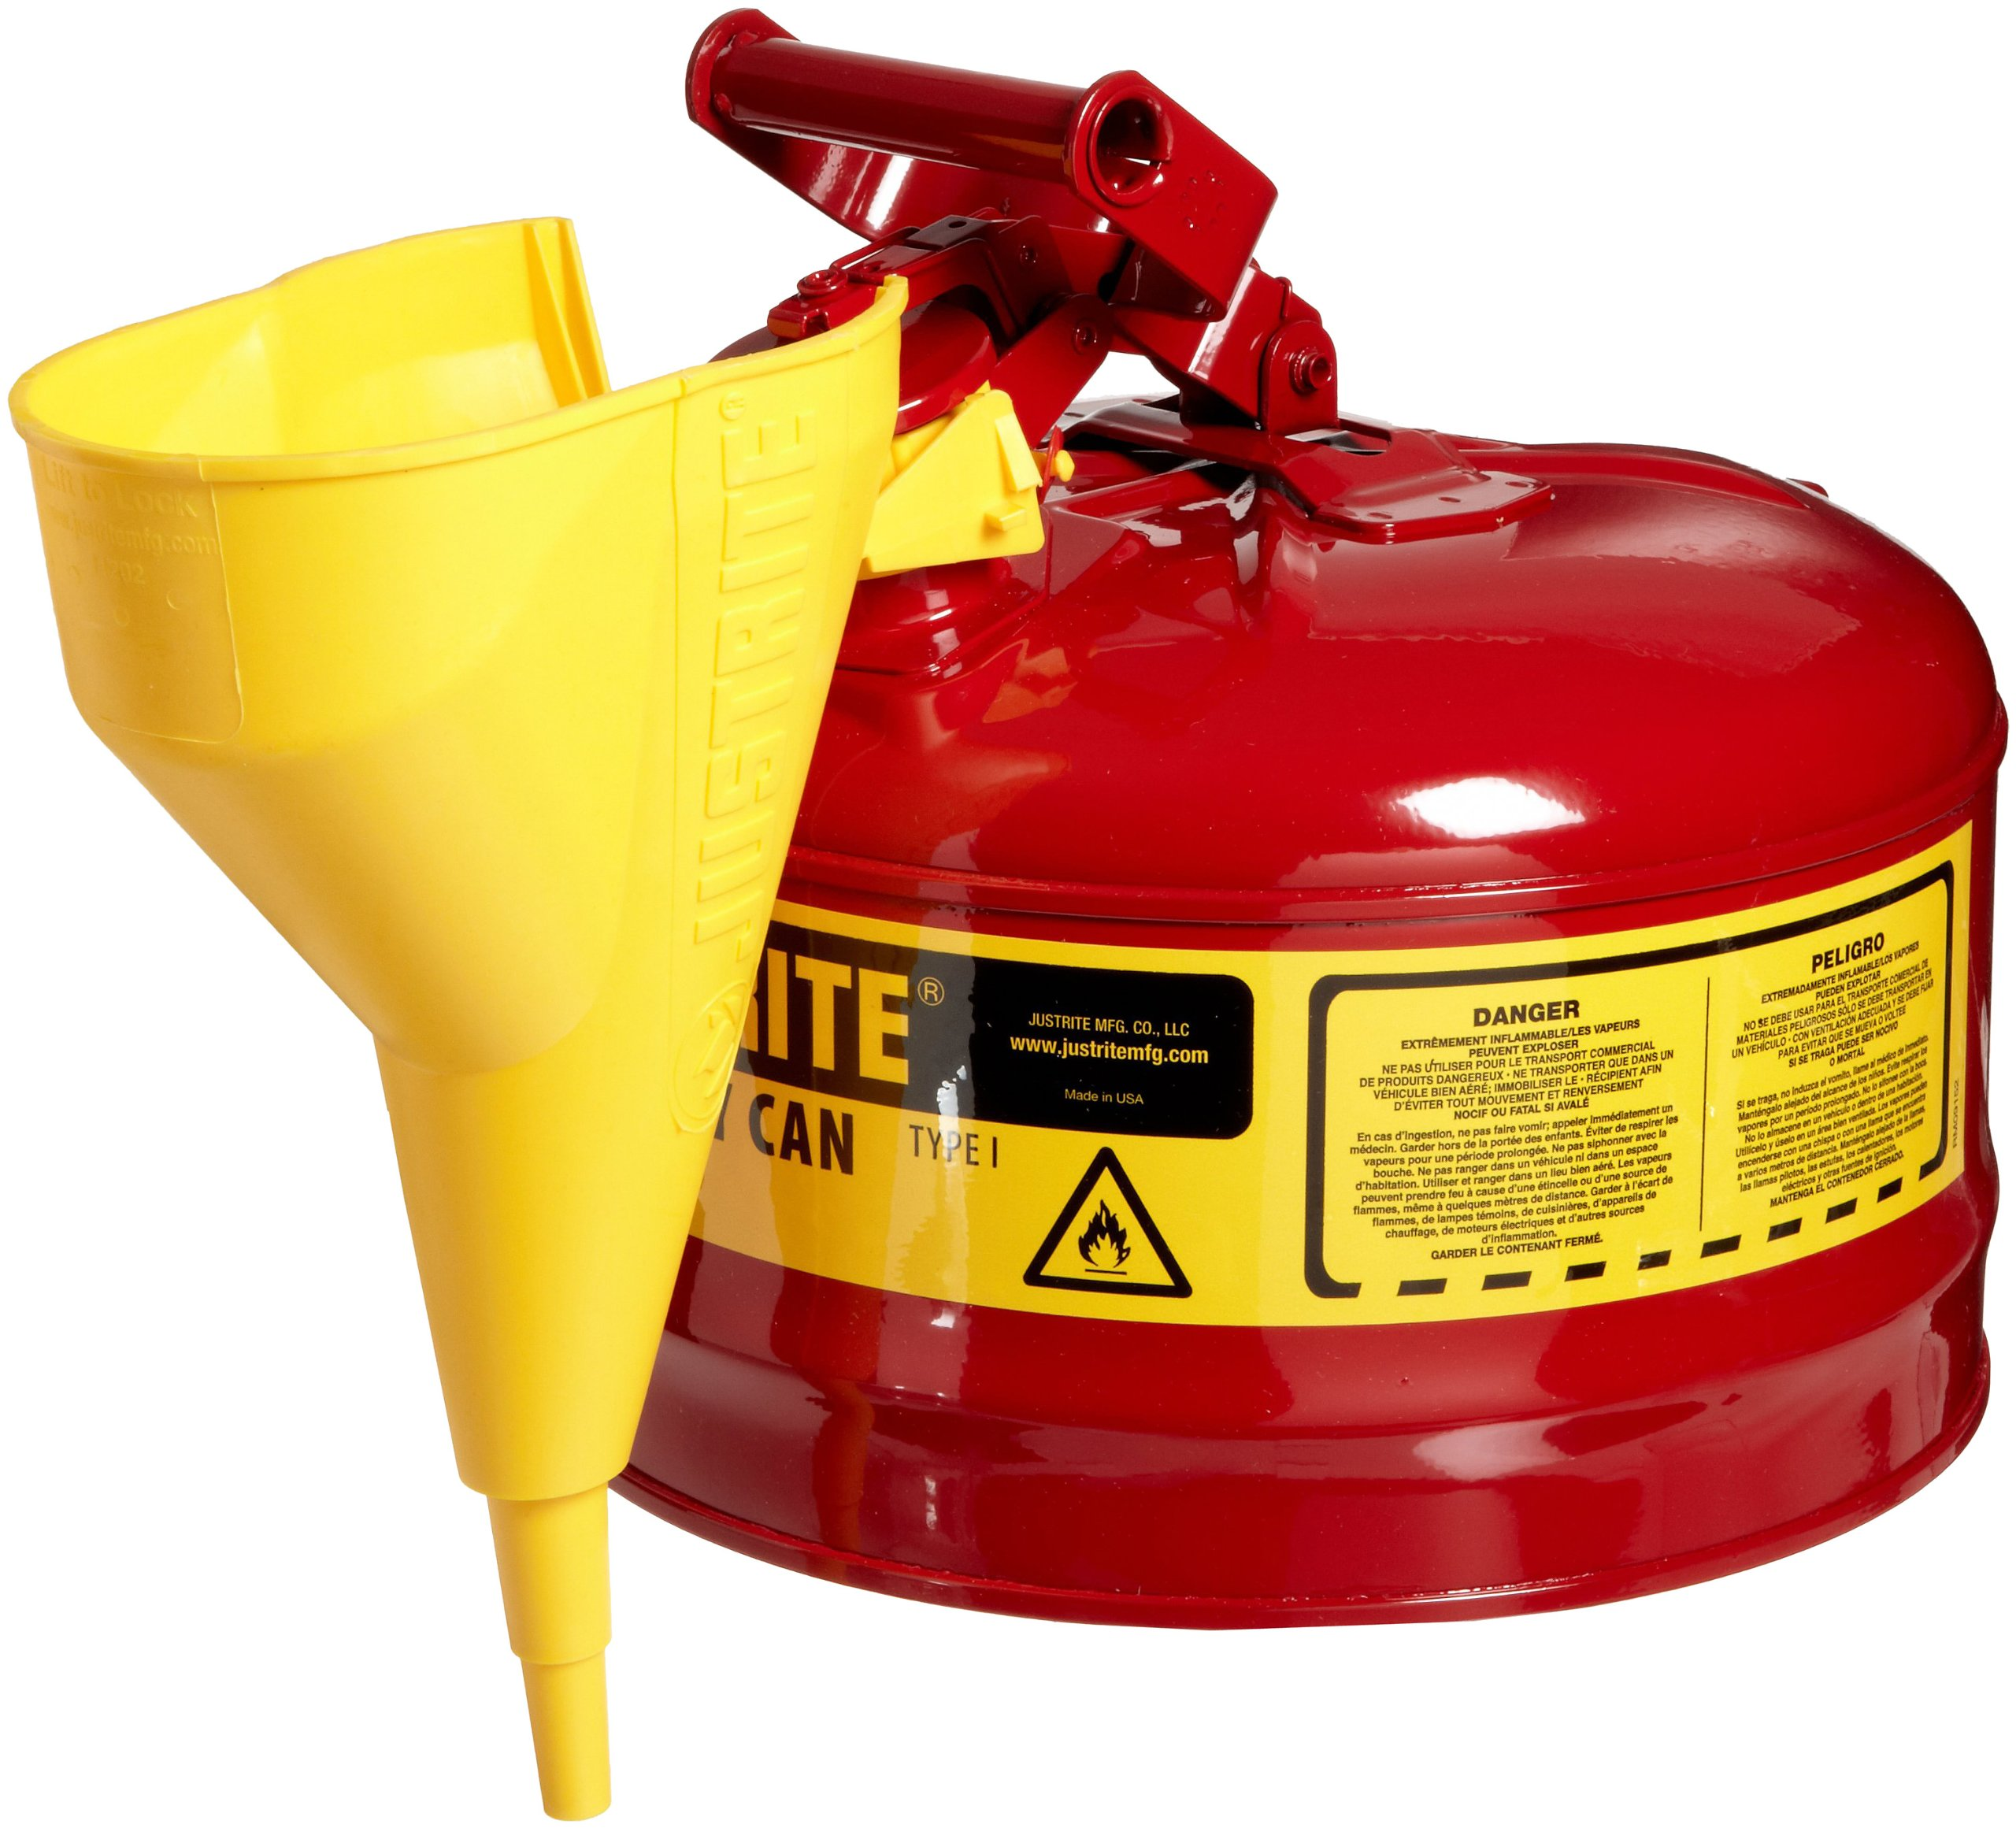 Justrite 7125110 2 Gallon, 11.75'' OD x 11.50'' H Galvanized Steel Type I Red Safety Can With Funnel